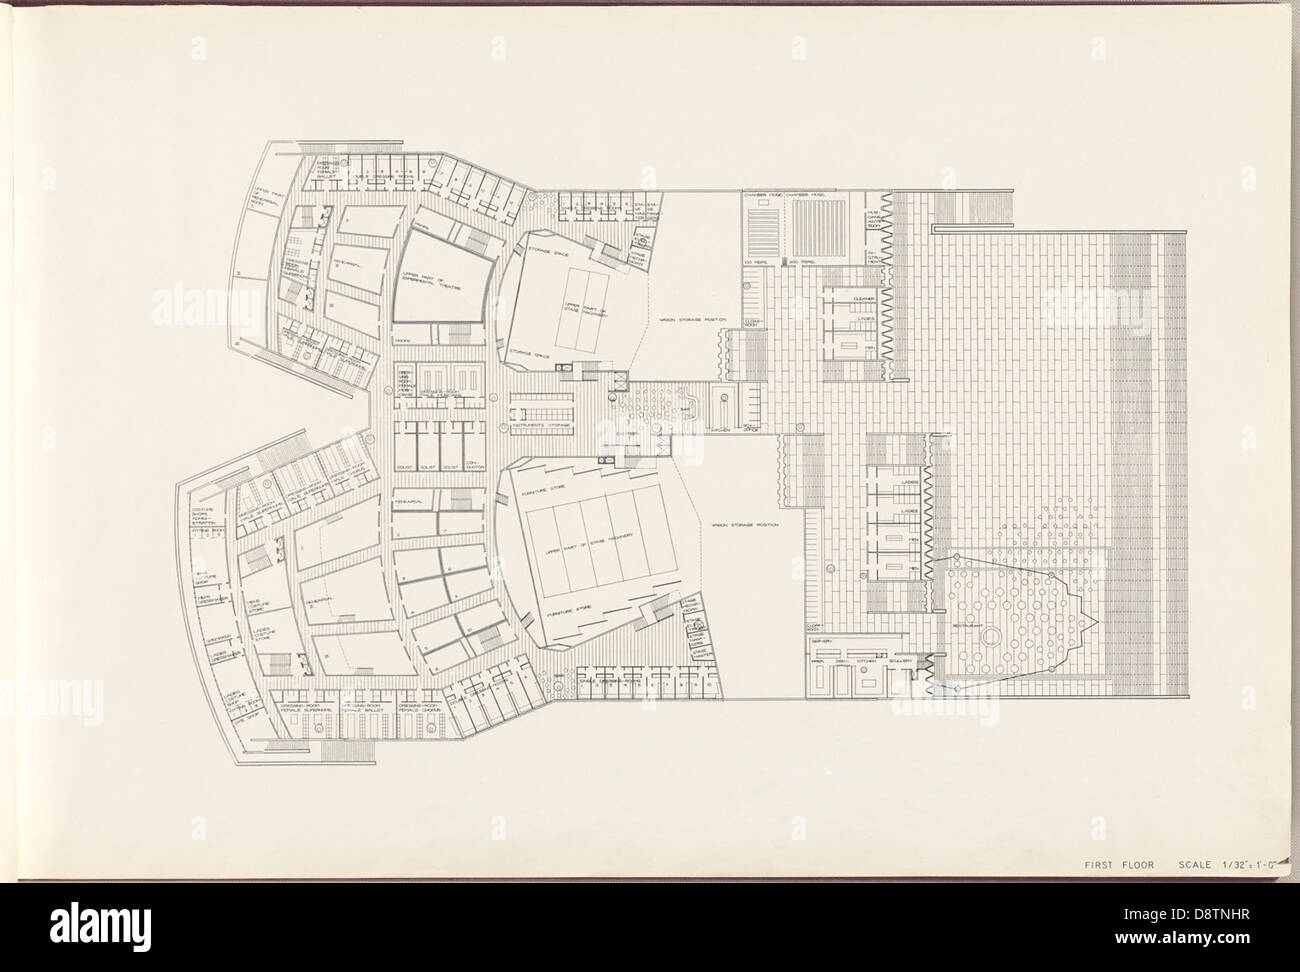 Beautiful Sydney Opera House Floor Plan Gallery - Flooring & Area ...